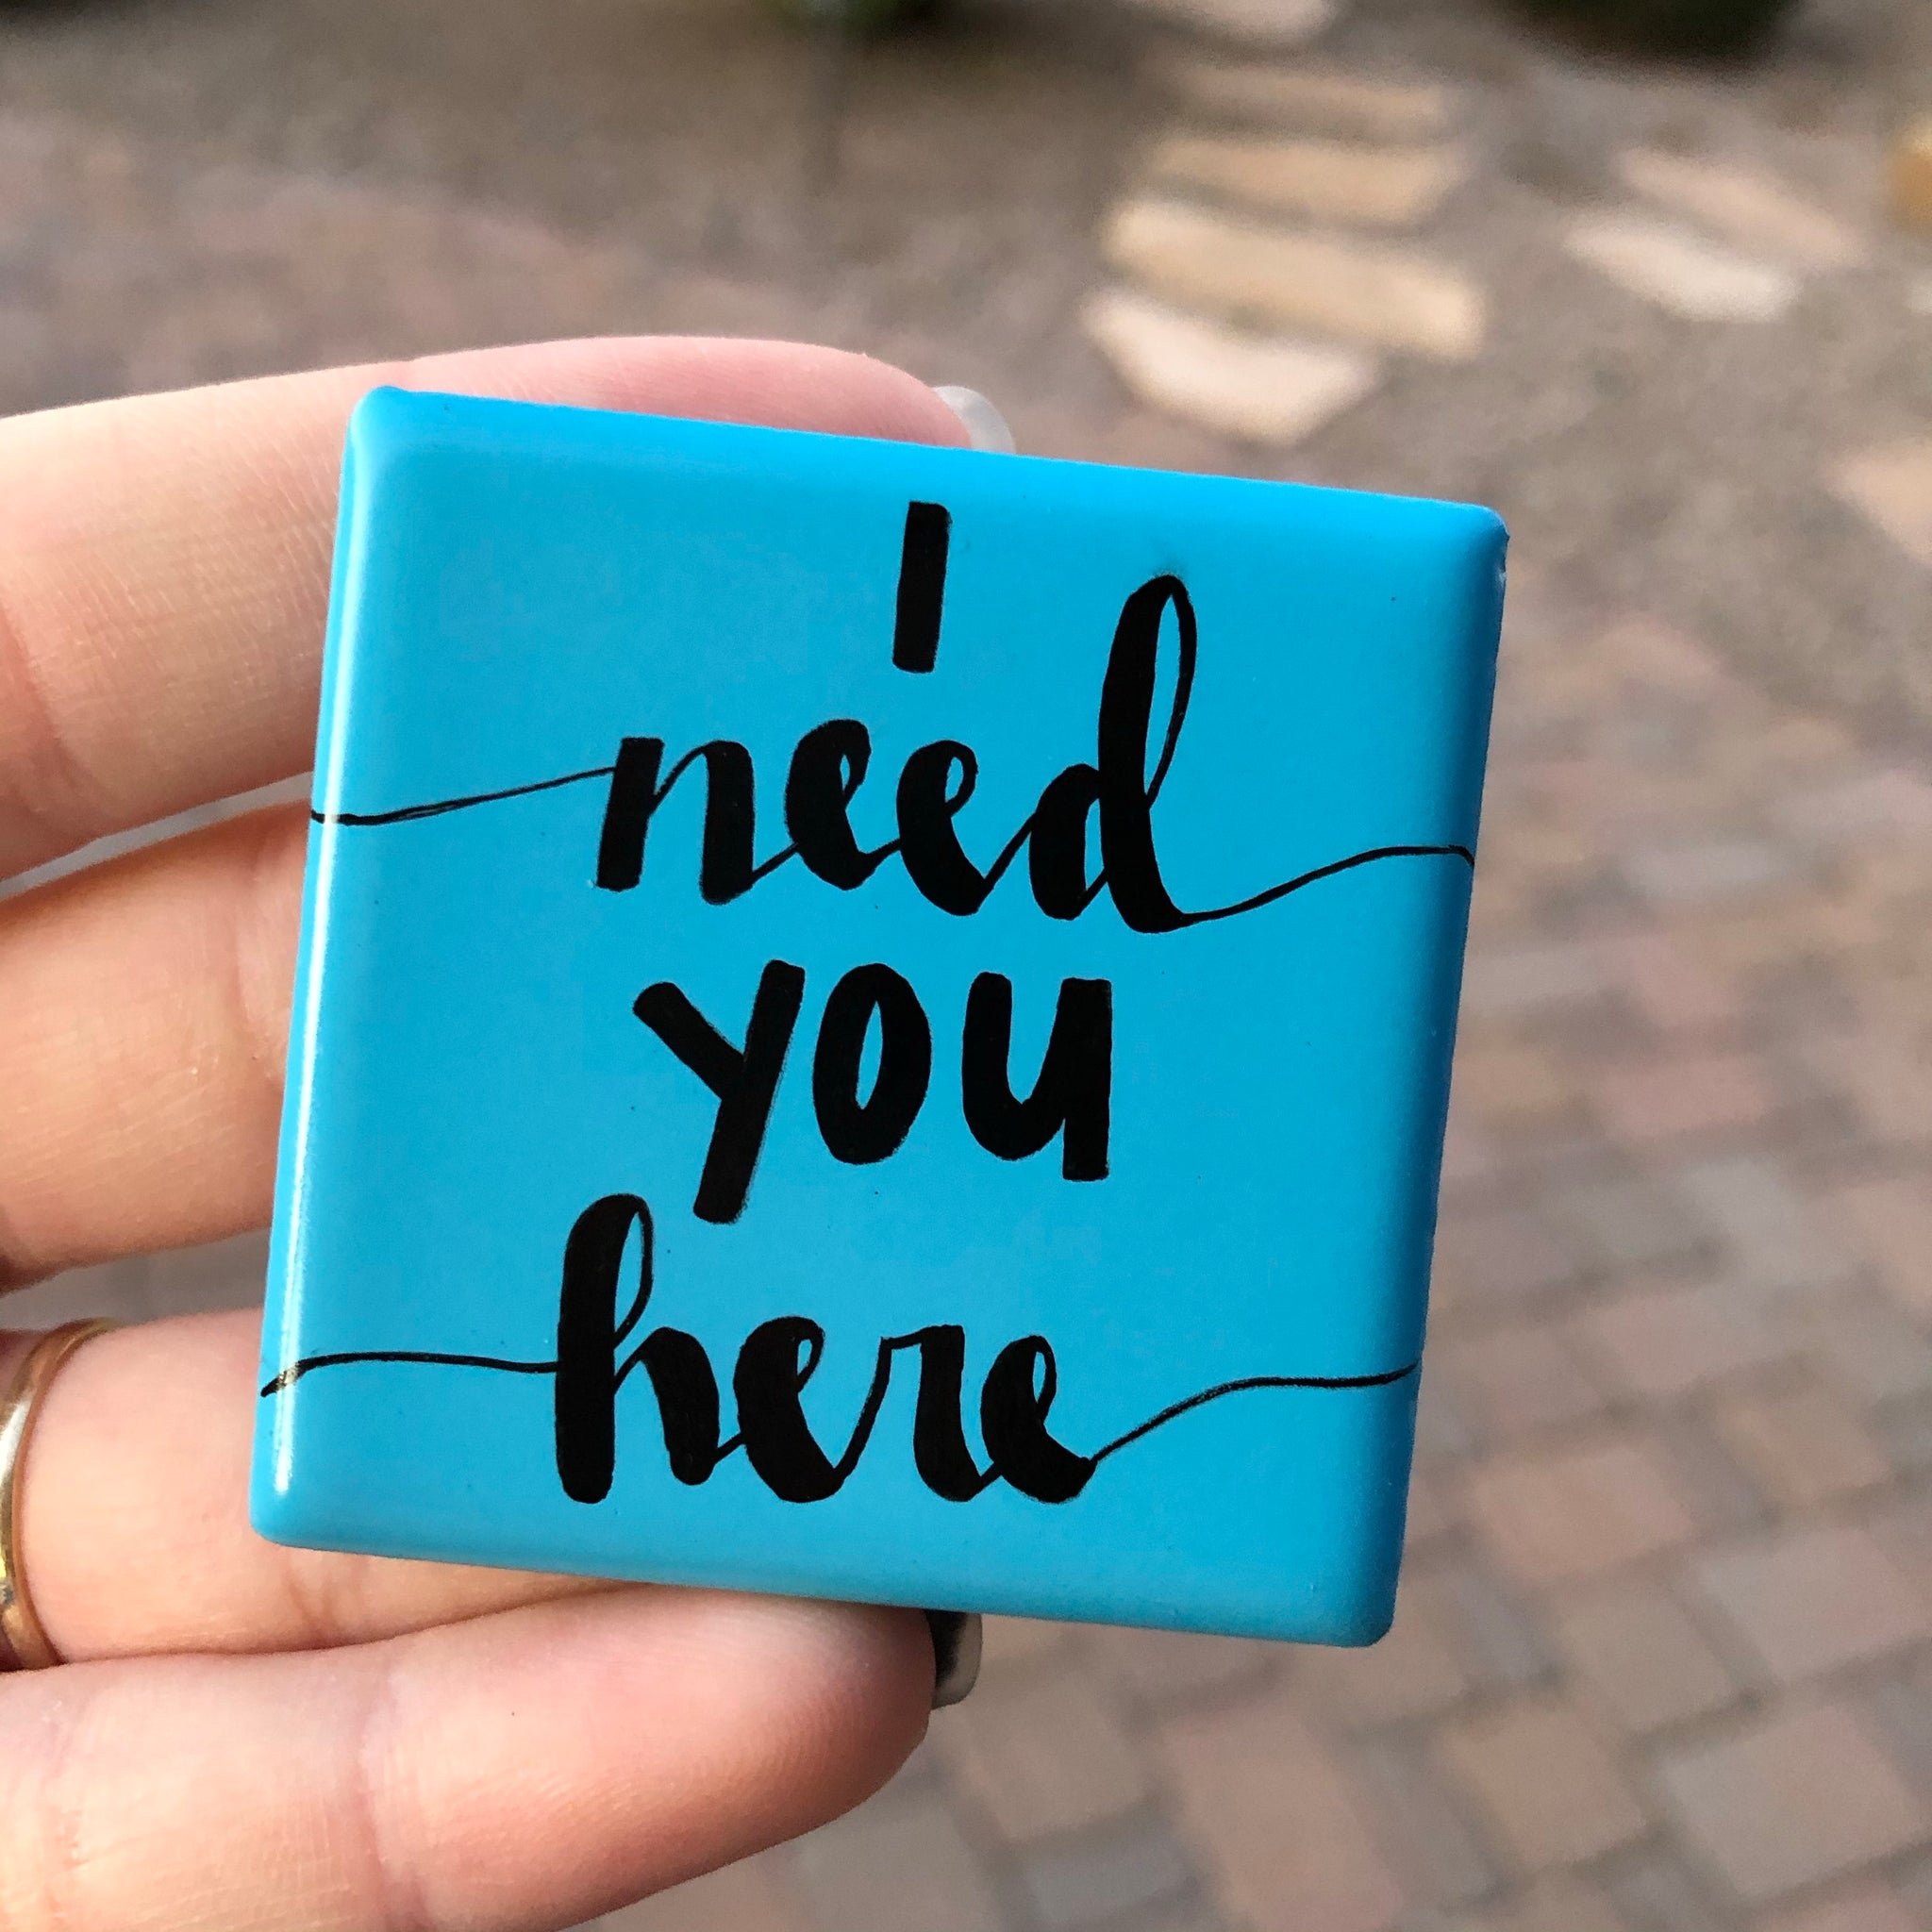 I need you here. Reminder that you are important, especially to me. I need you. Gift idea.